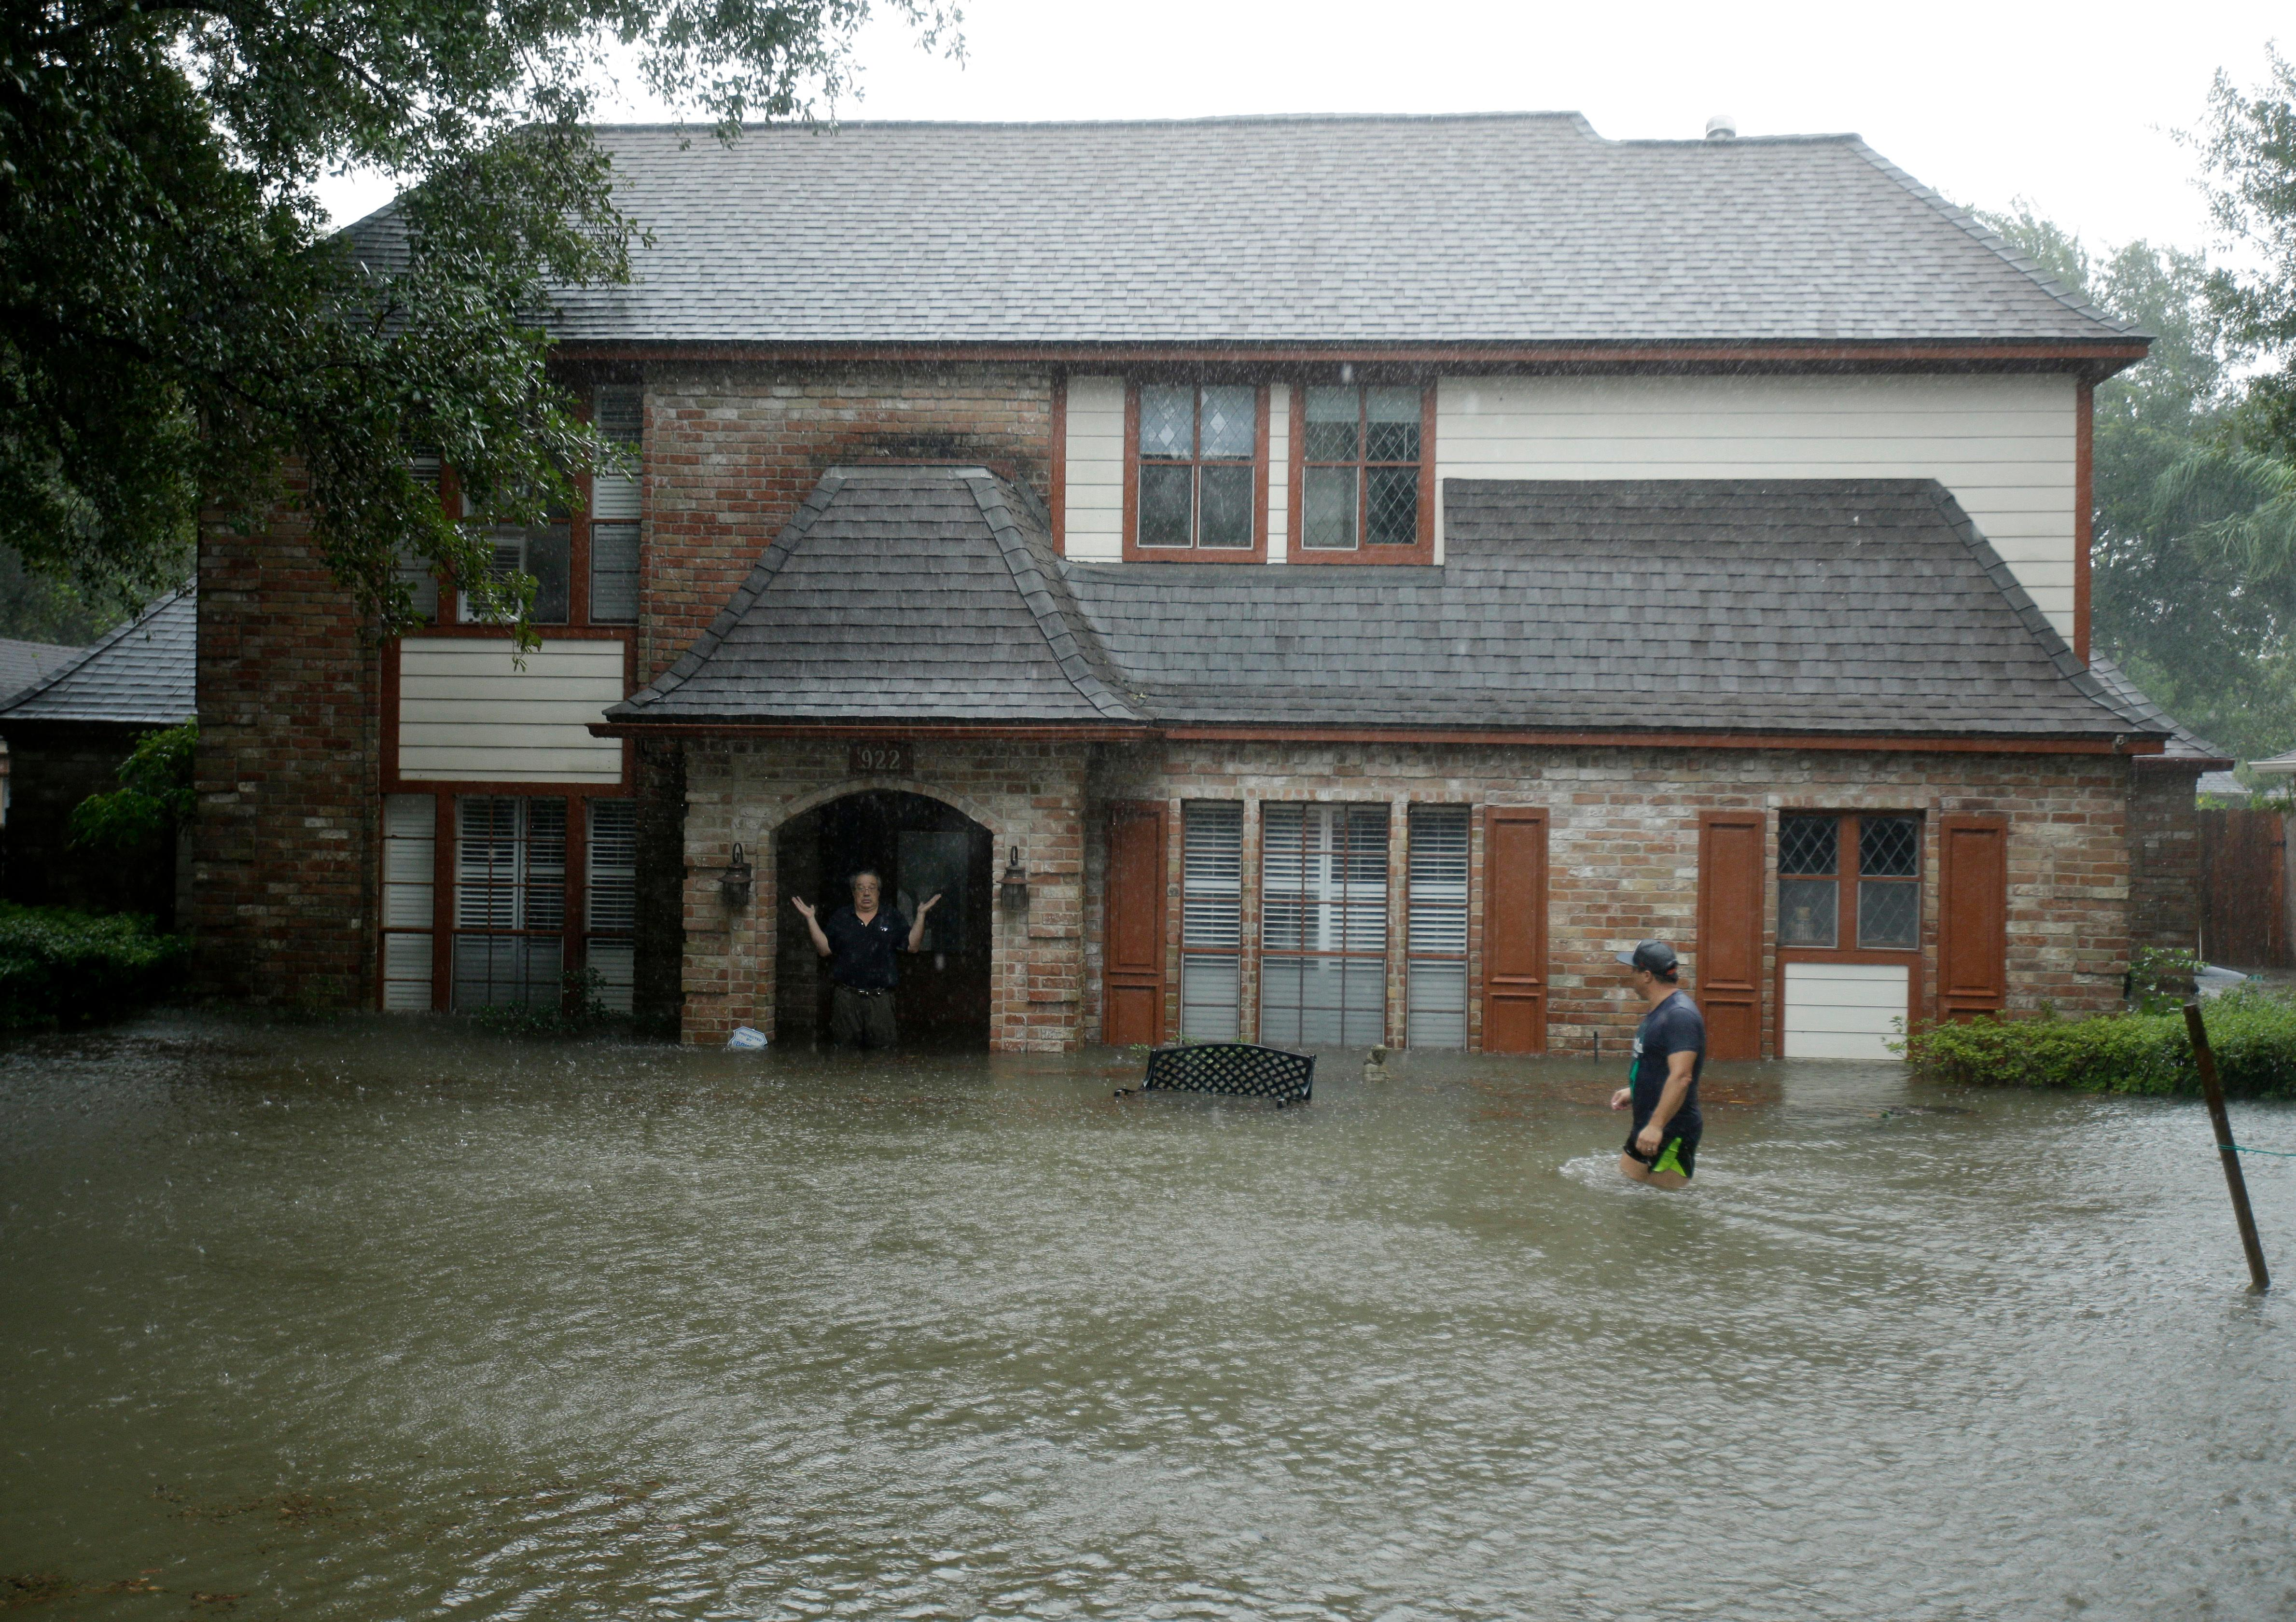 A man standing in the doorway of his flooded home responds to an evacuation offer in a neighborhood inundated by floodwaters from Tropical Storm Harvey on Monday, Aug. 28, 2017, in Houston, Texas. (AP Photo/Charlie Riedel)